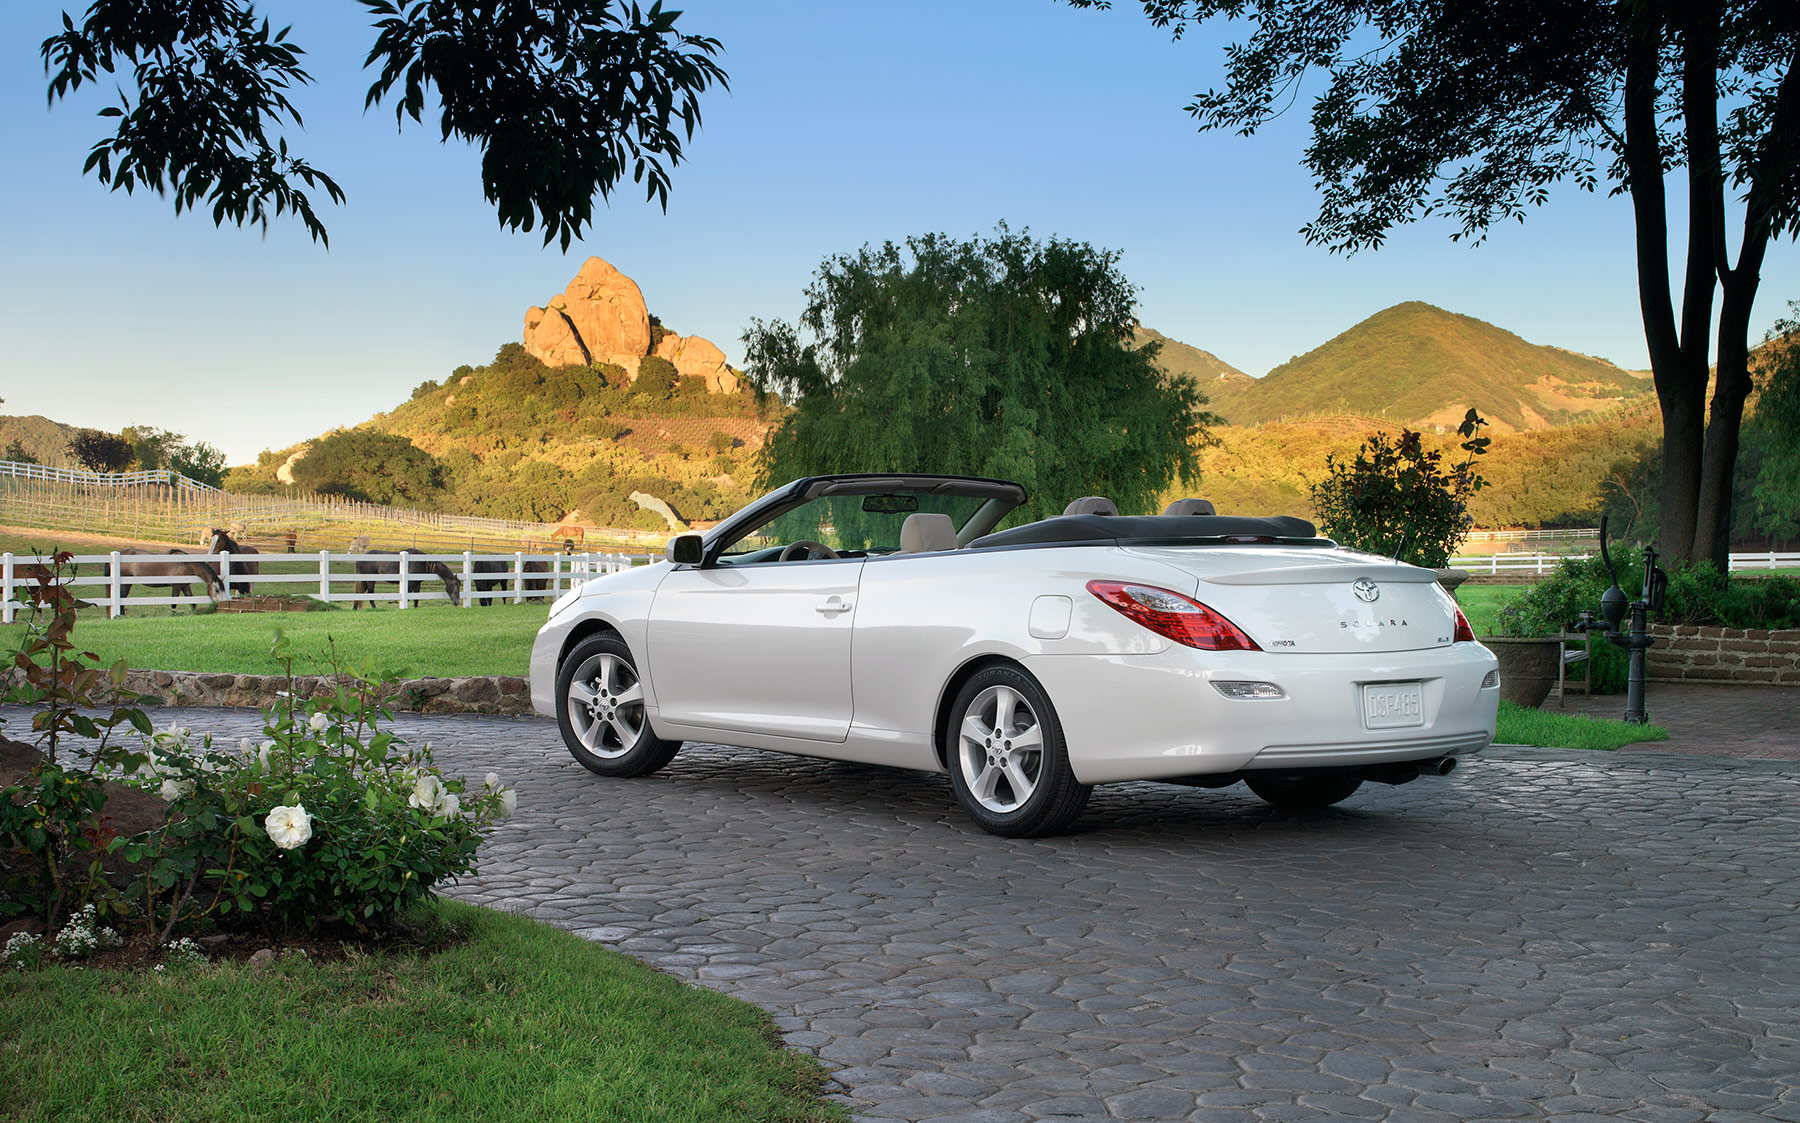 White Acura convertible car Automotive Photography | Dovis Bird Agency Reps